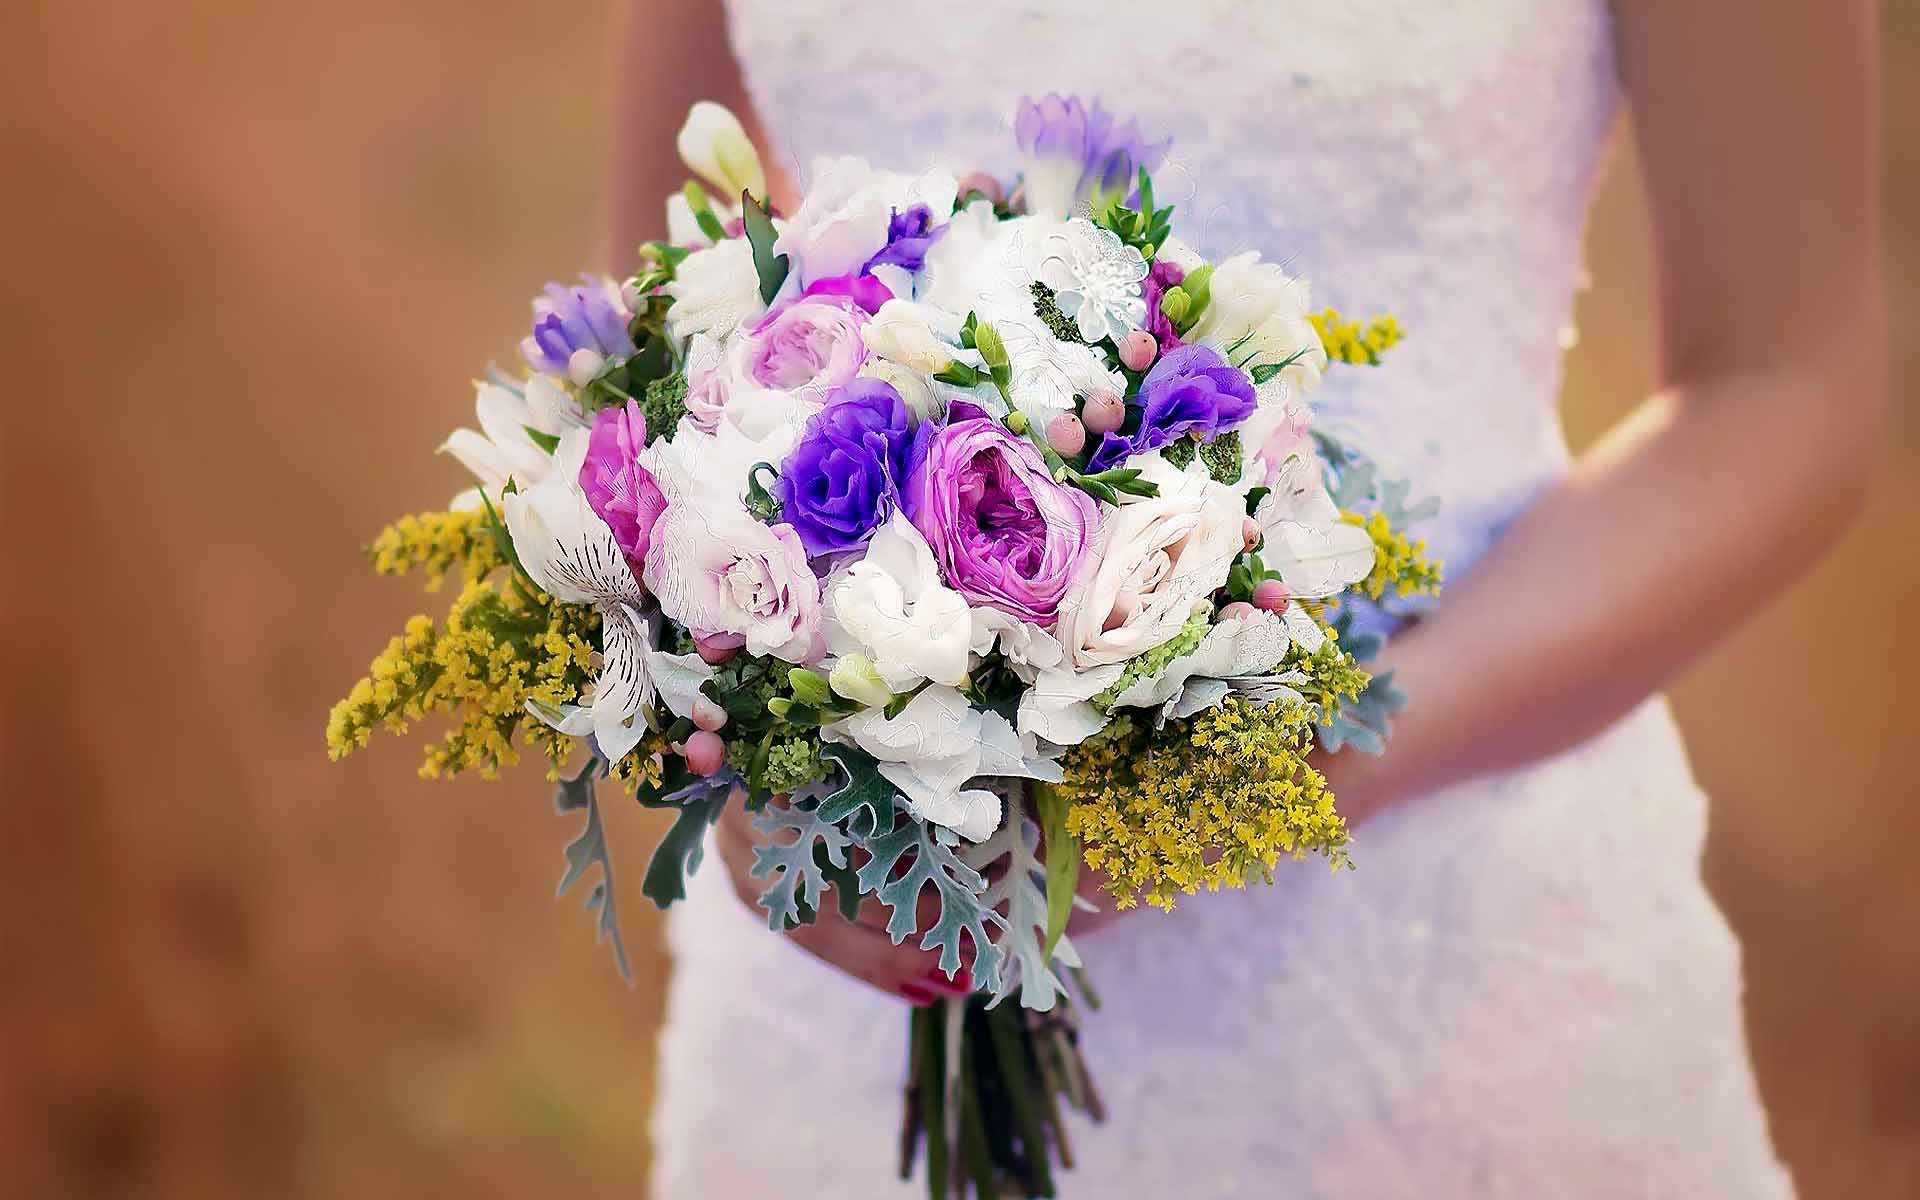 The-Yellow-Babys-Breath-Ties-Together-The-White-Pink-And-Purple-Arrangement